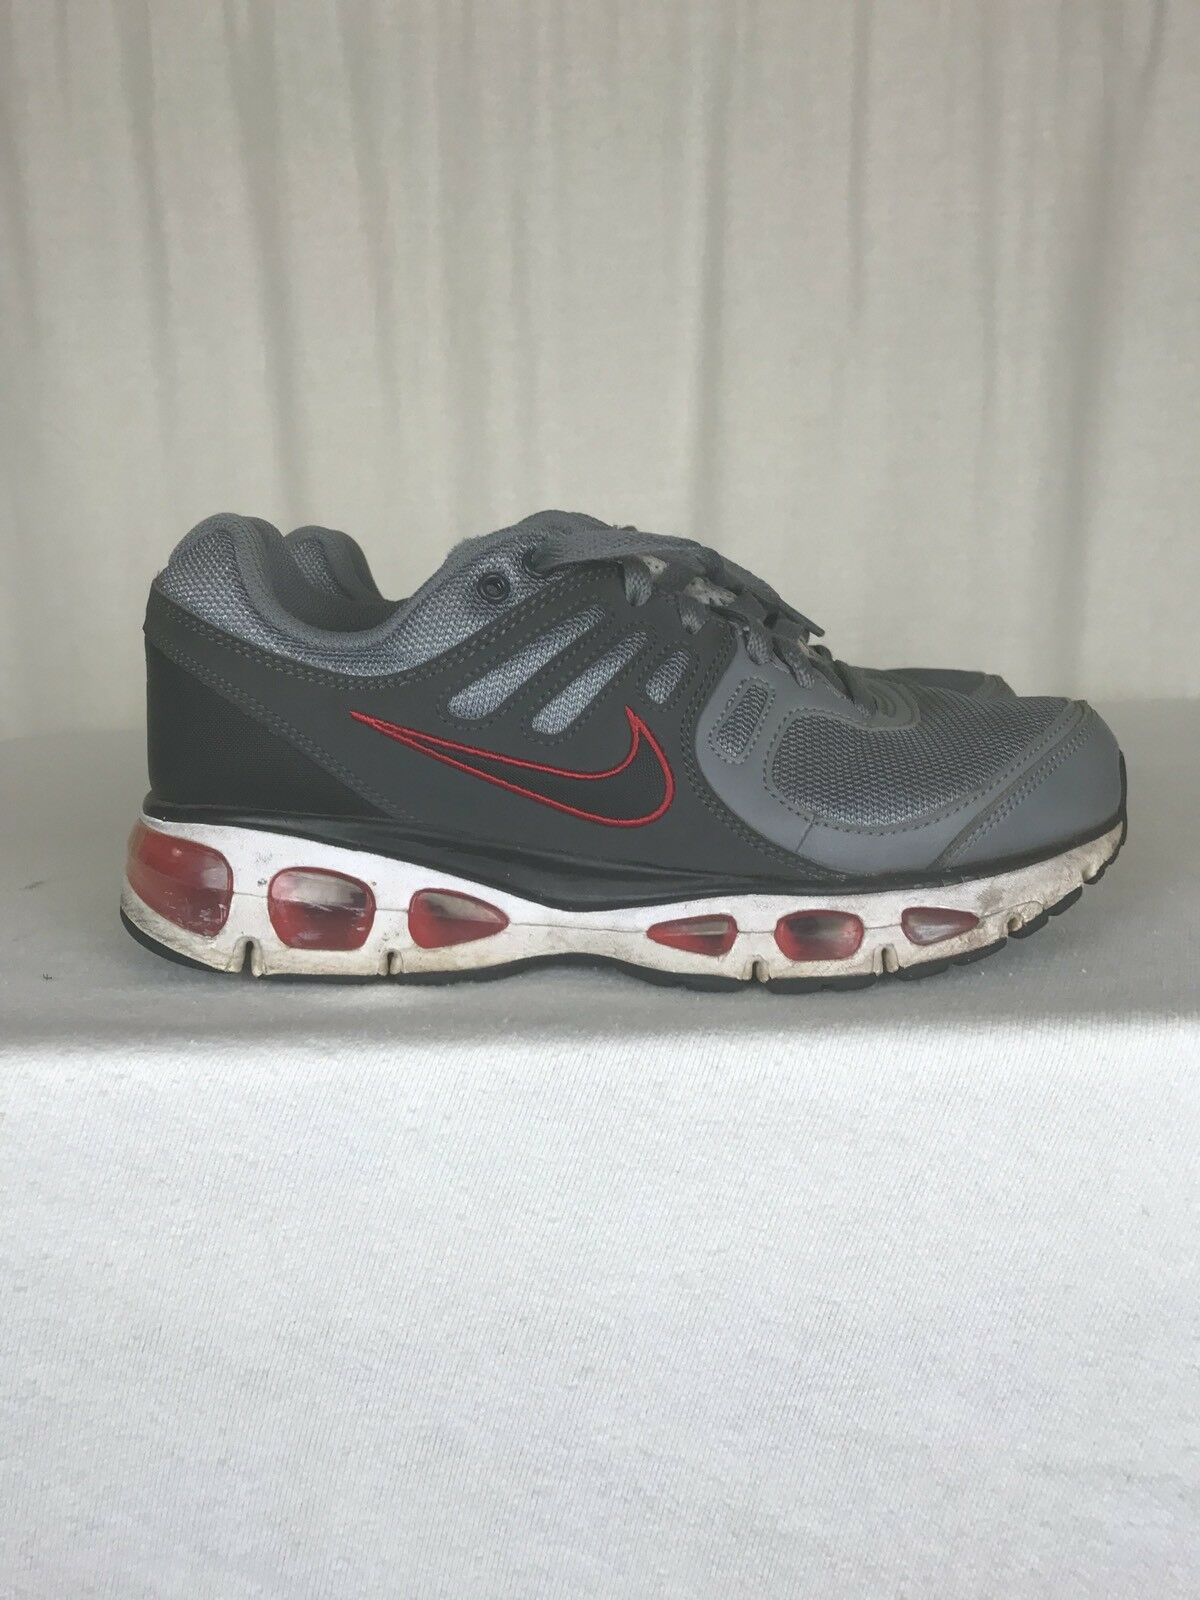 NIKE AIR MAX TAILWIND 2010 RUNNING SHOES SIZE 6 Grade School 454504-008 E Comfortable and good-looking